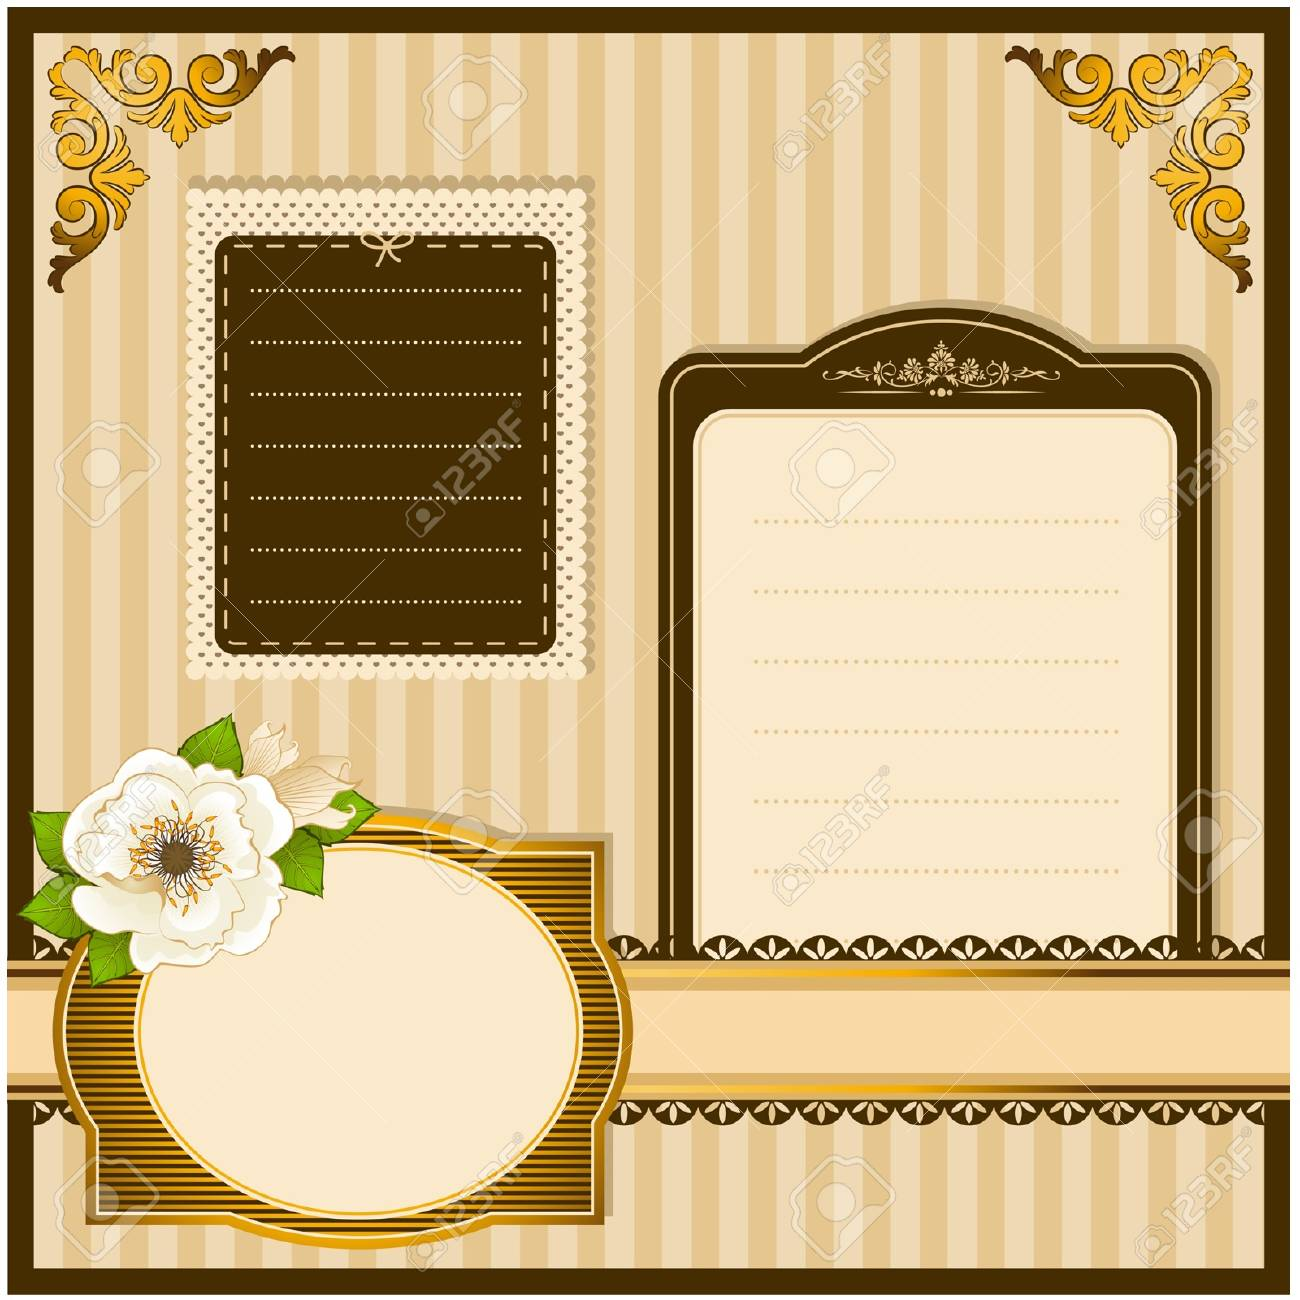 Vintage Flowers with lace ornaments on background Stock Vector - 12986915